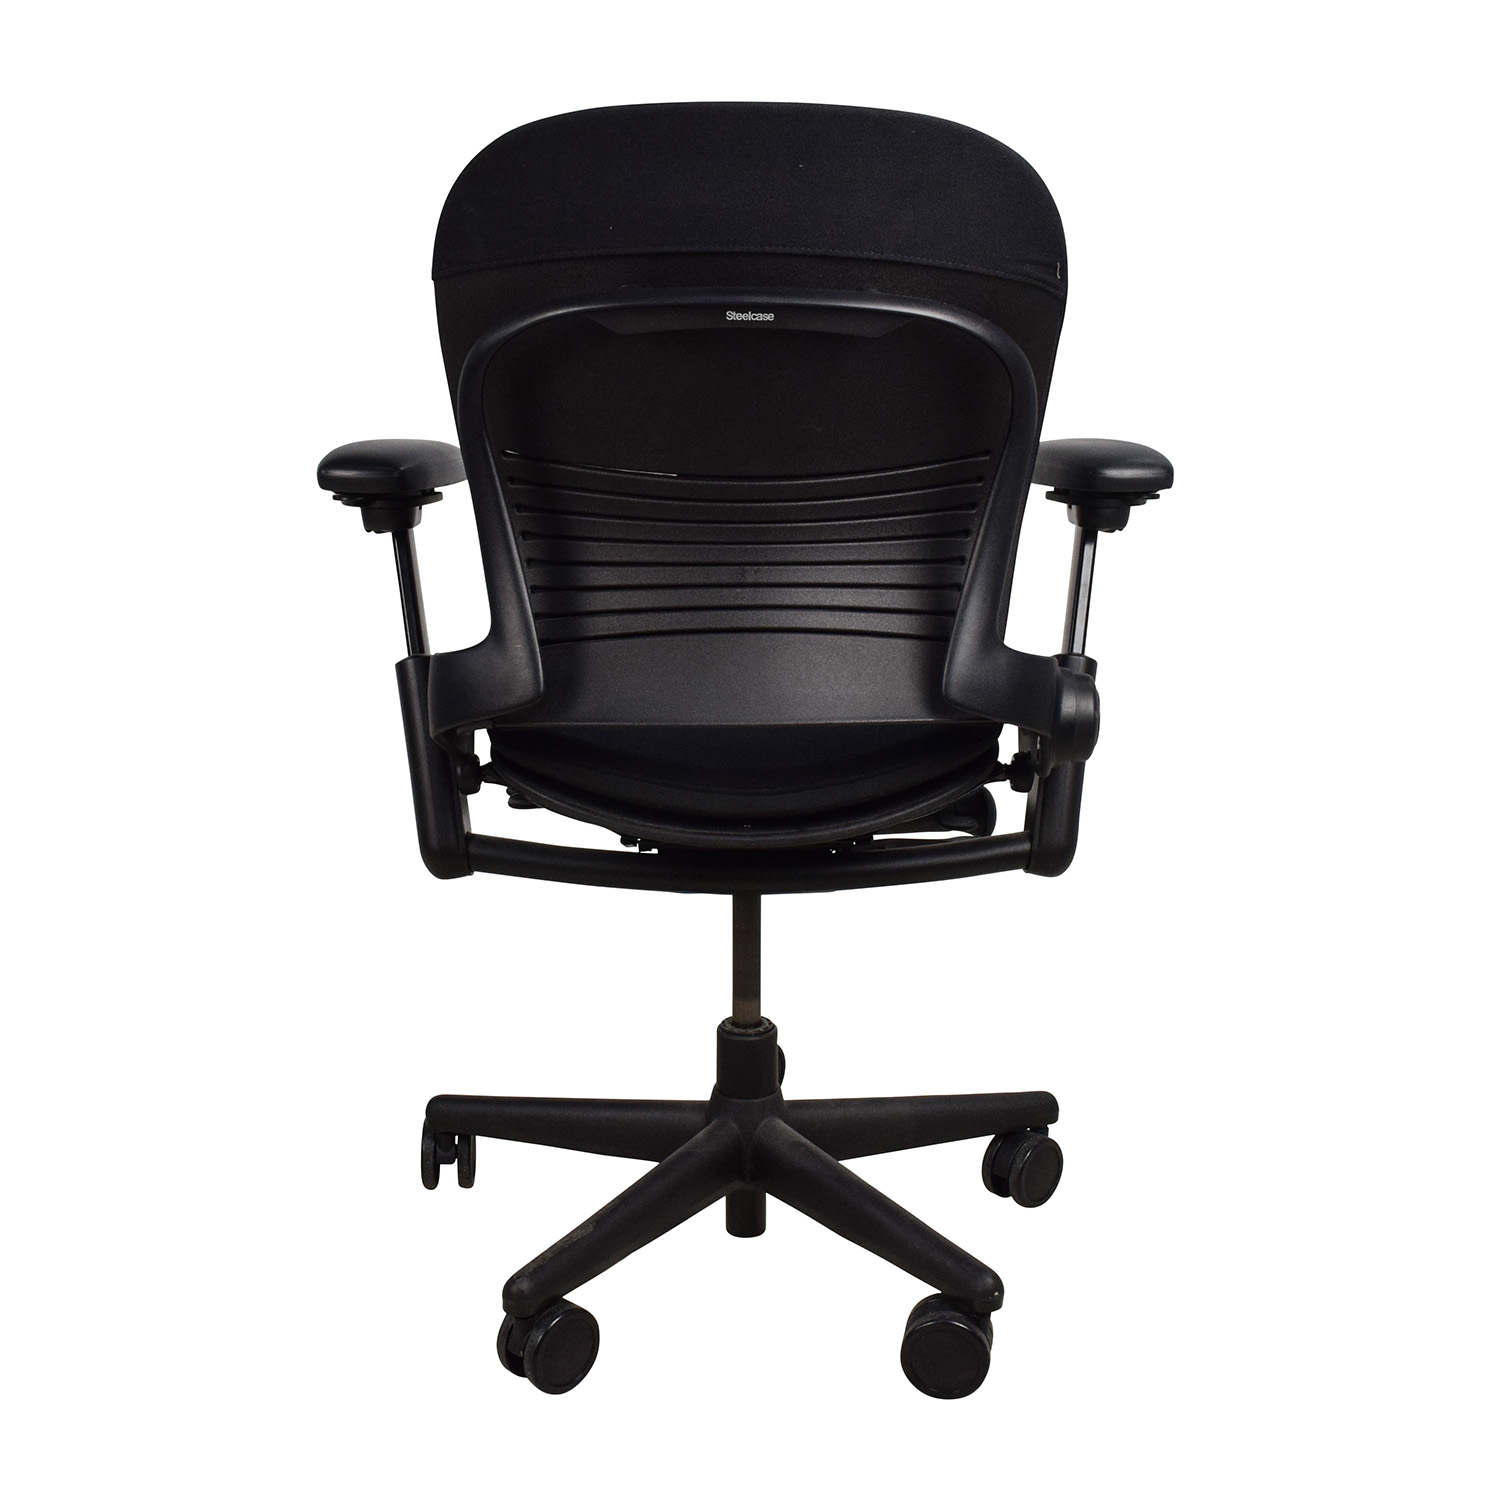 Furniture Chairs Black 71 Off Adjustable Black Office Desk Chair Chairs